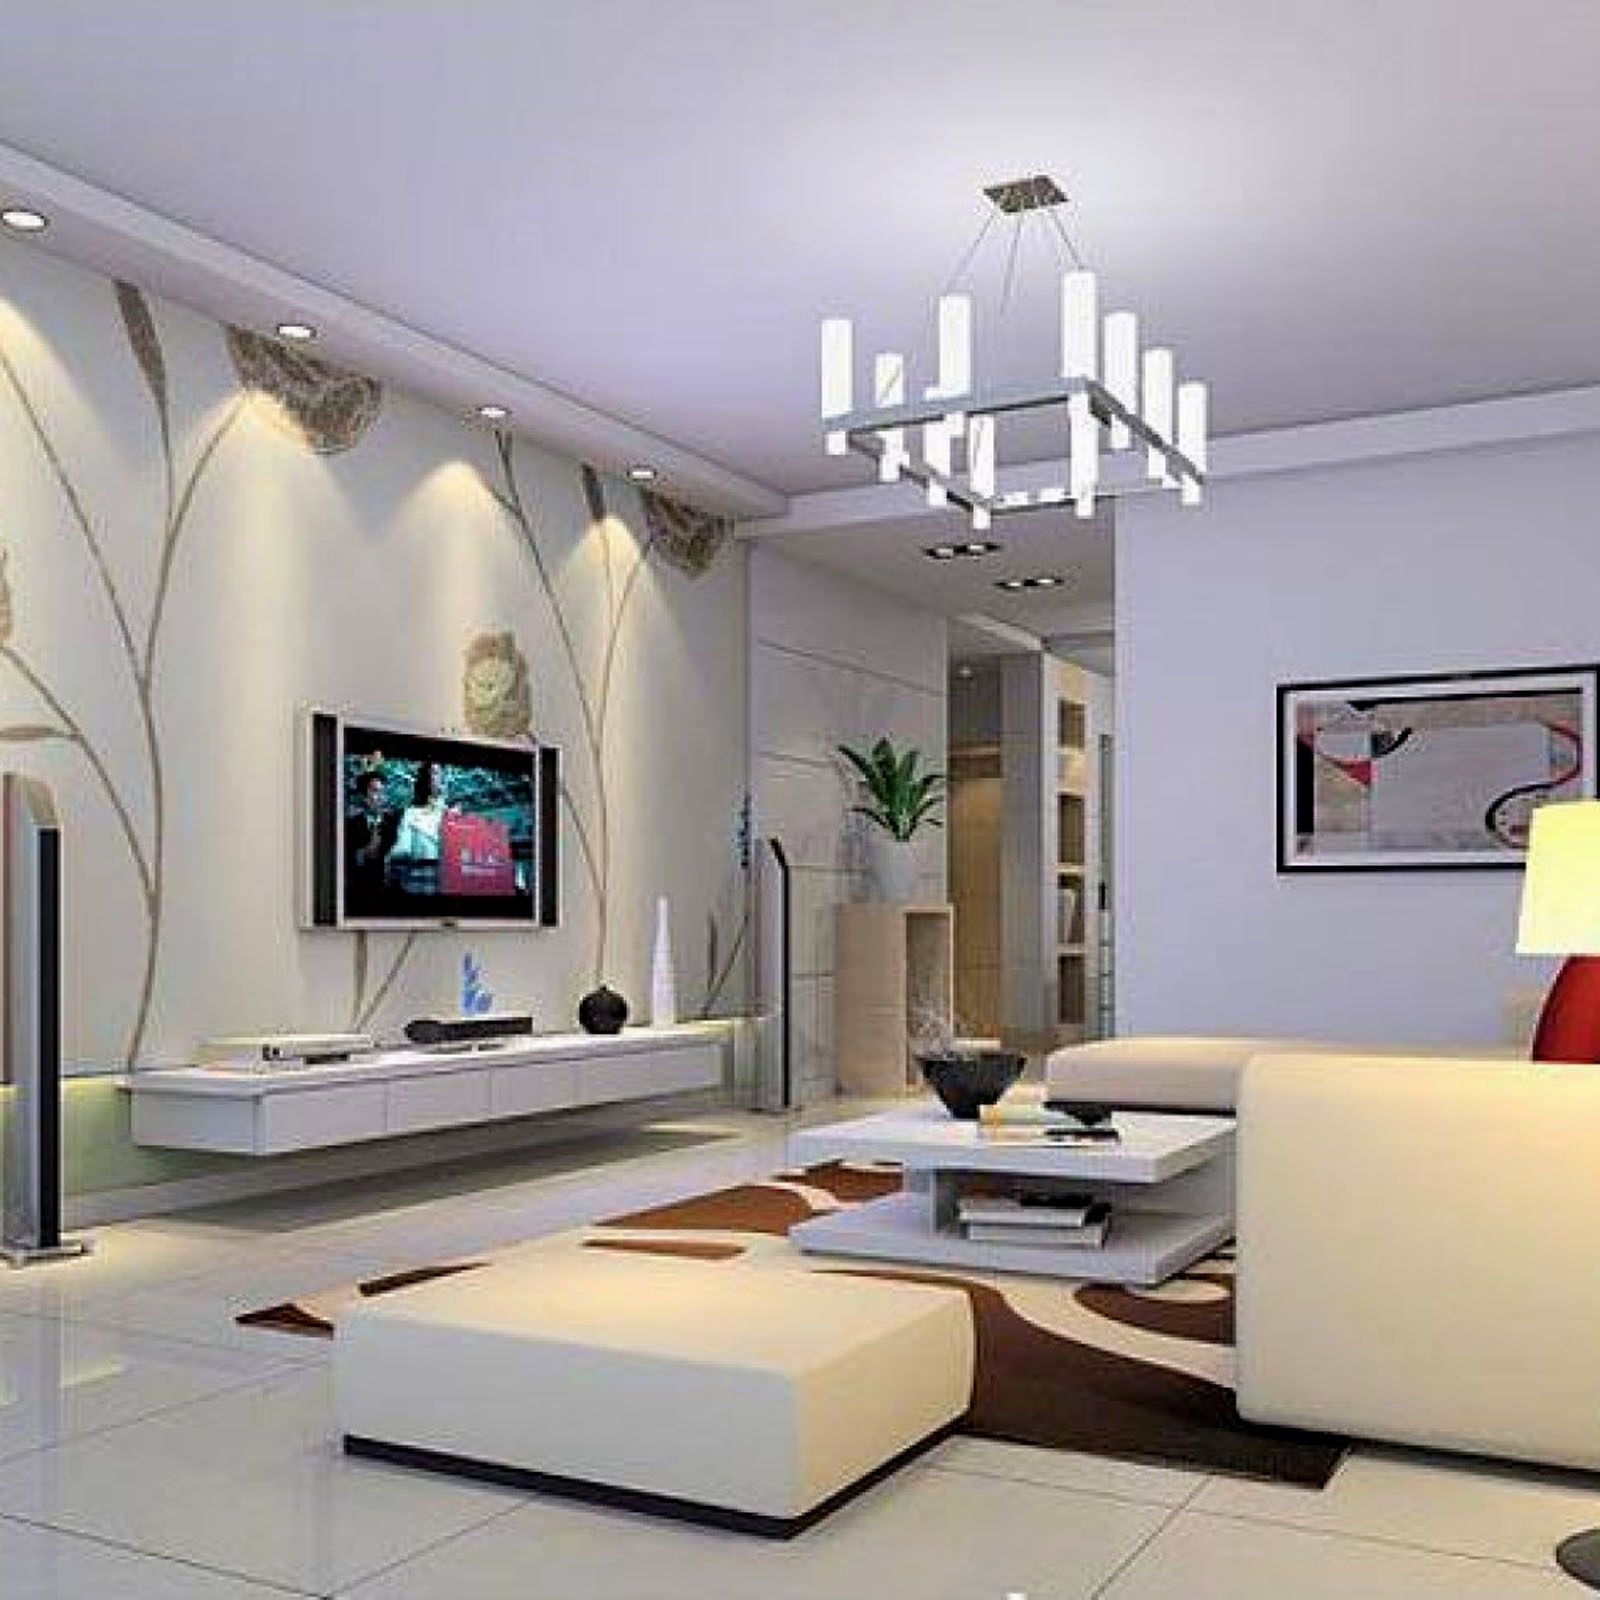 16 Apartment Decorating Small Living Room 2019 Decor I